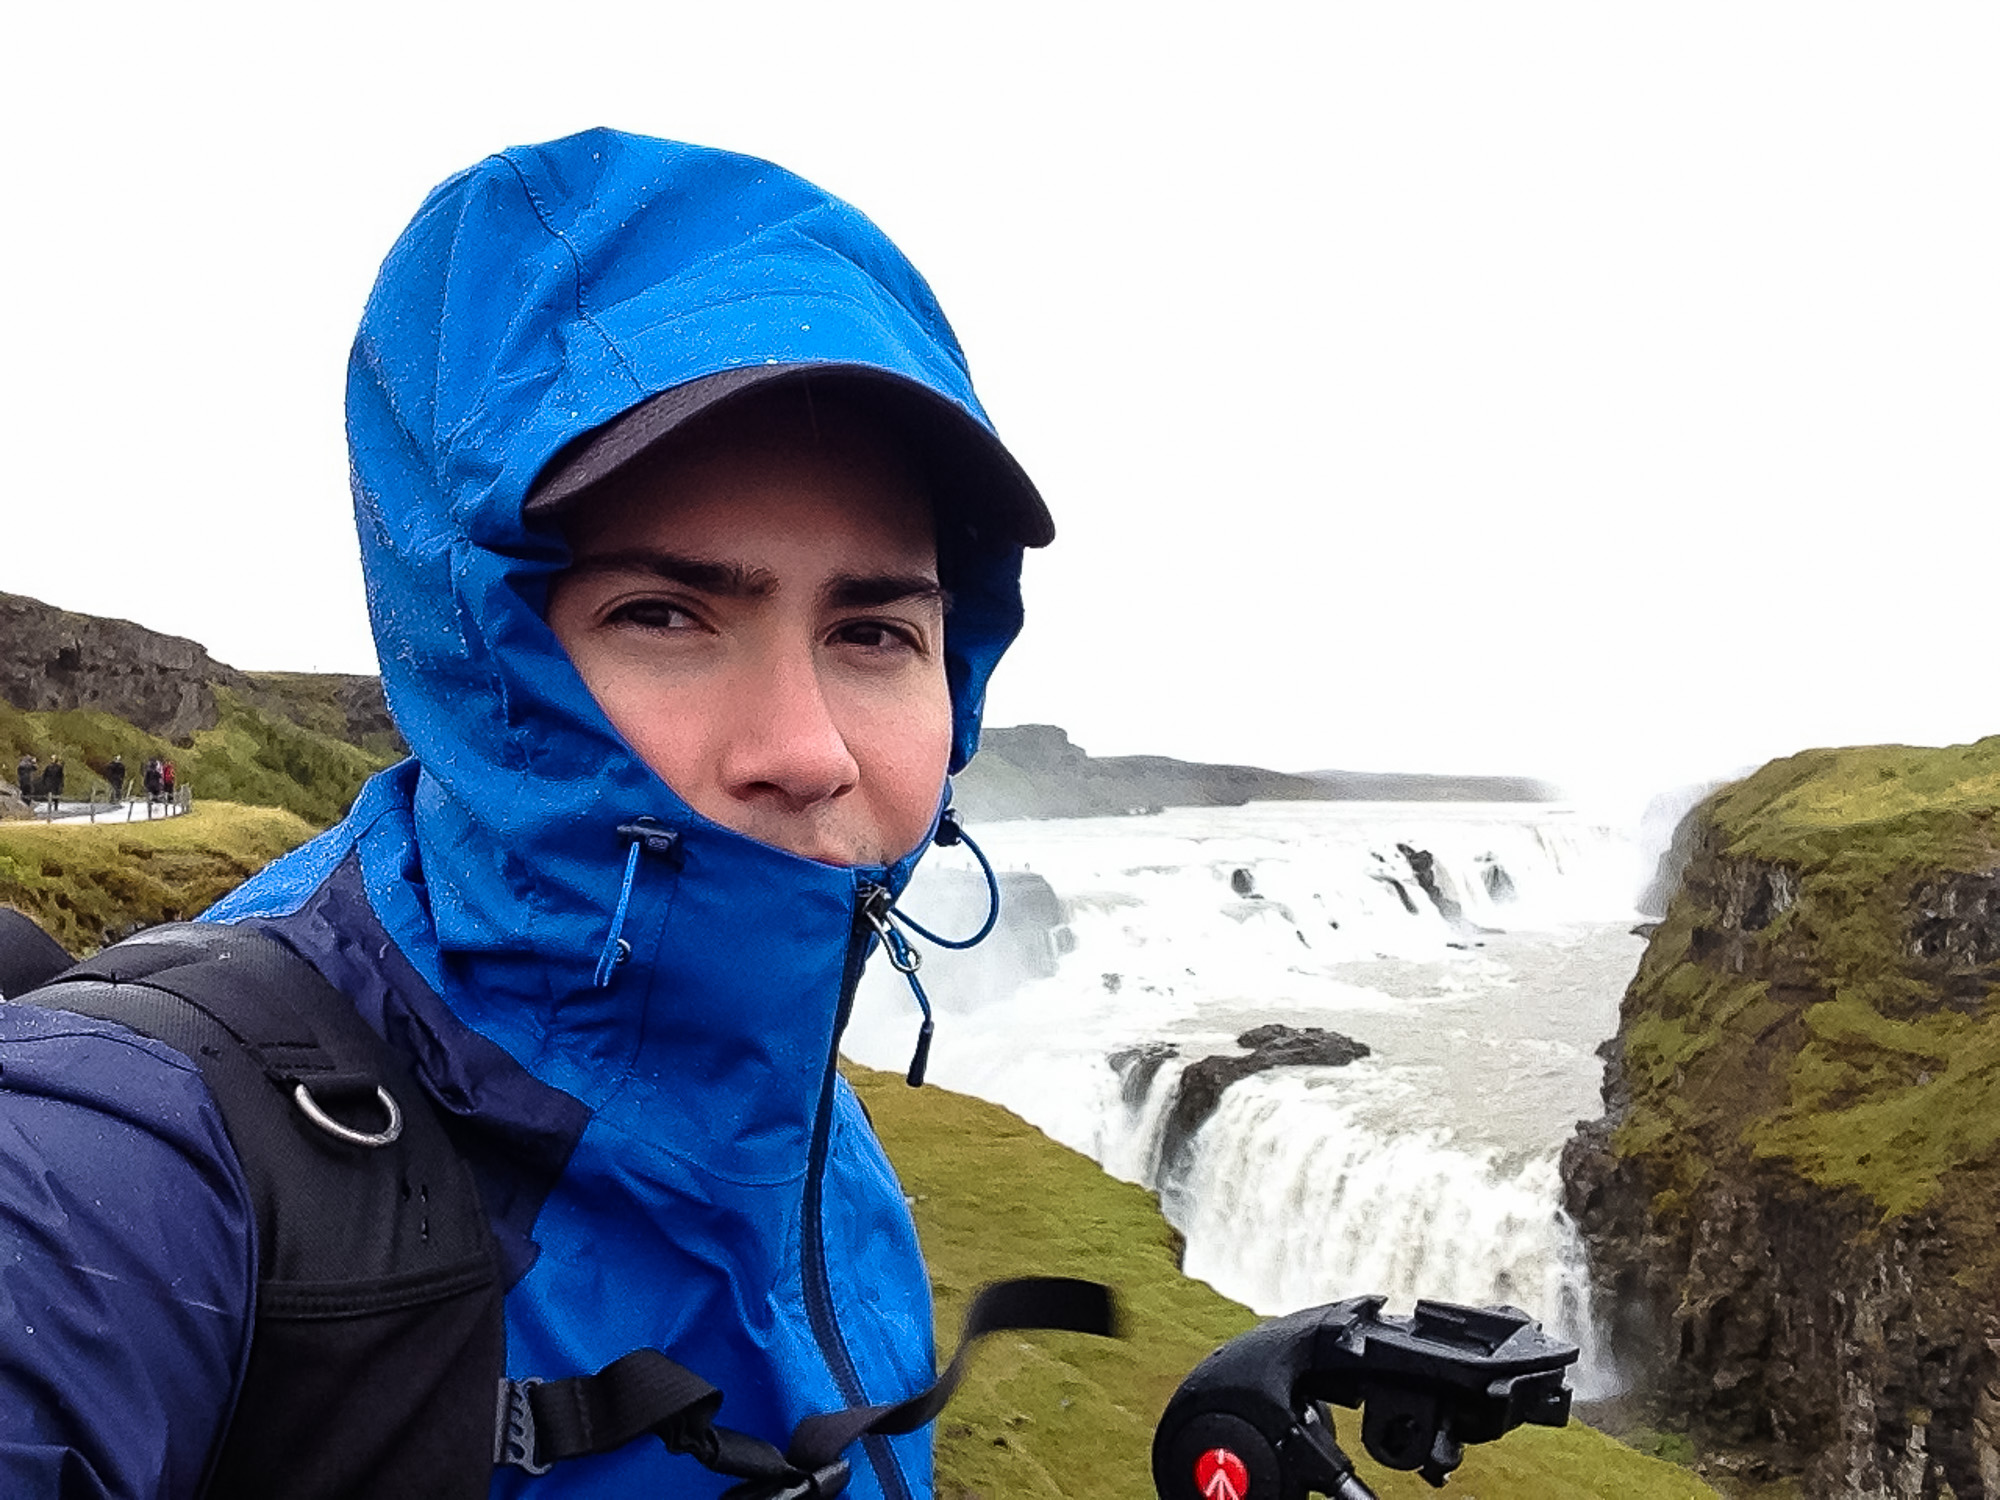 Gloomy skies, stinging winds, and icy rain was not what I was hoping for at Gullfoss (Golden Falls)